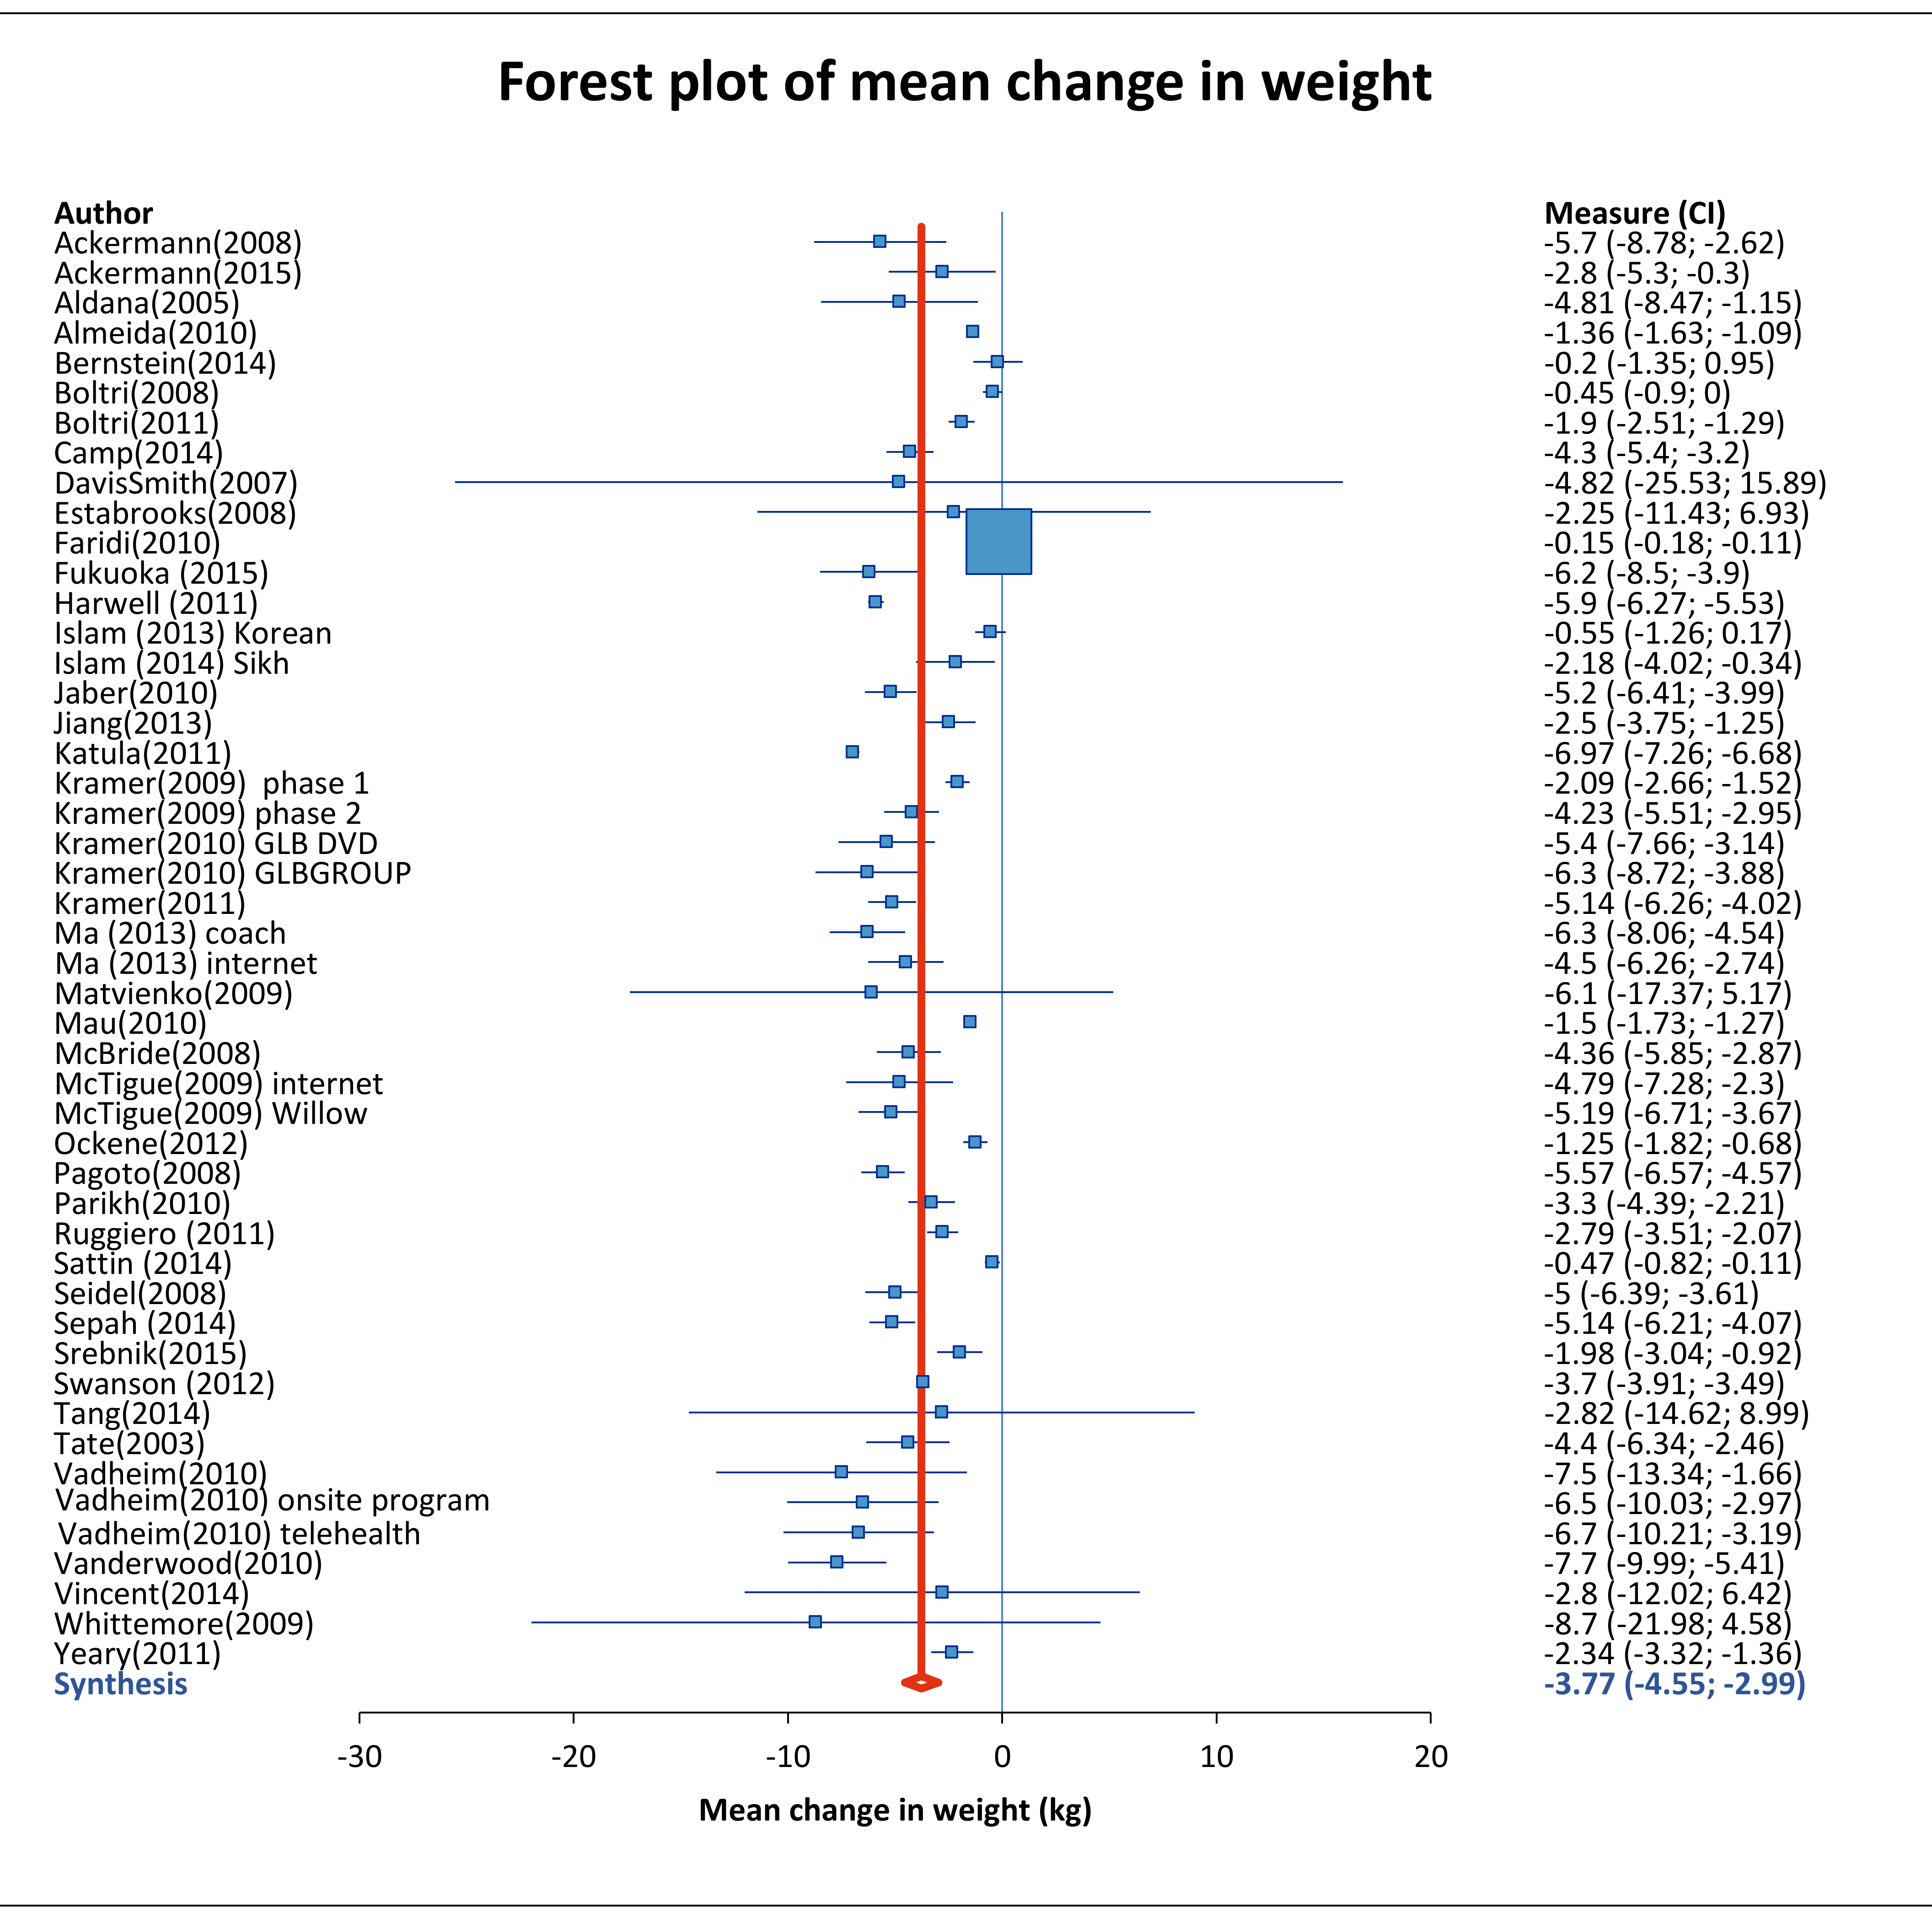 Mean weight change of study participants.